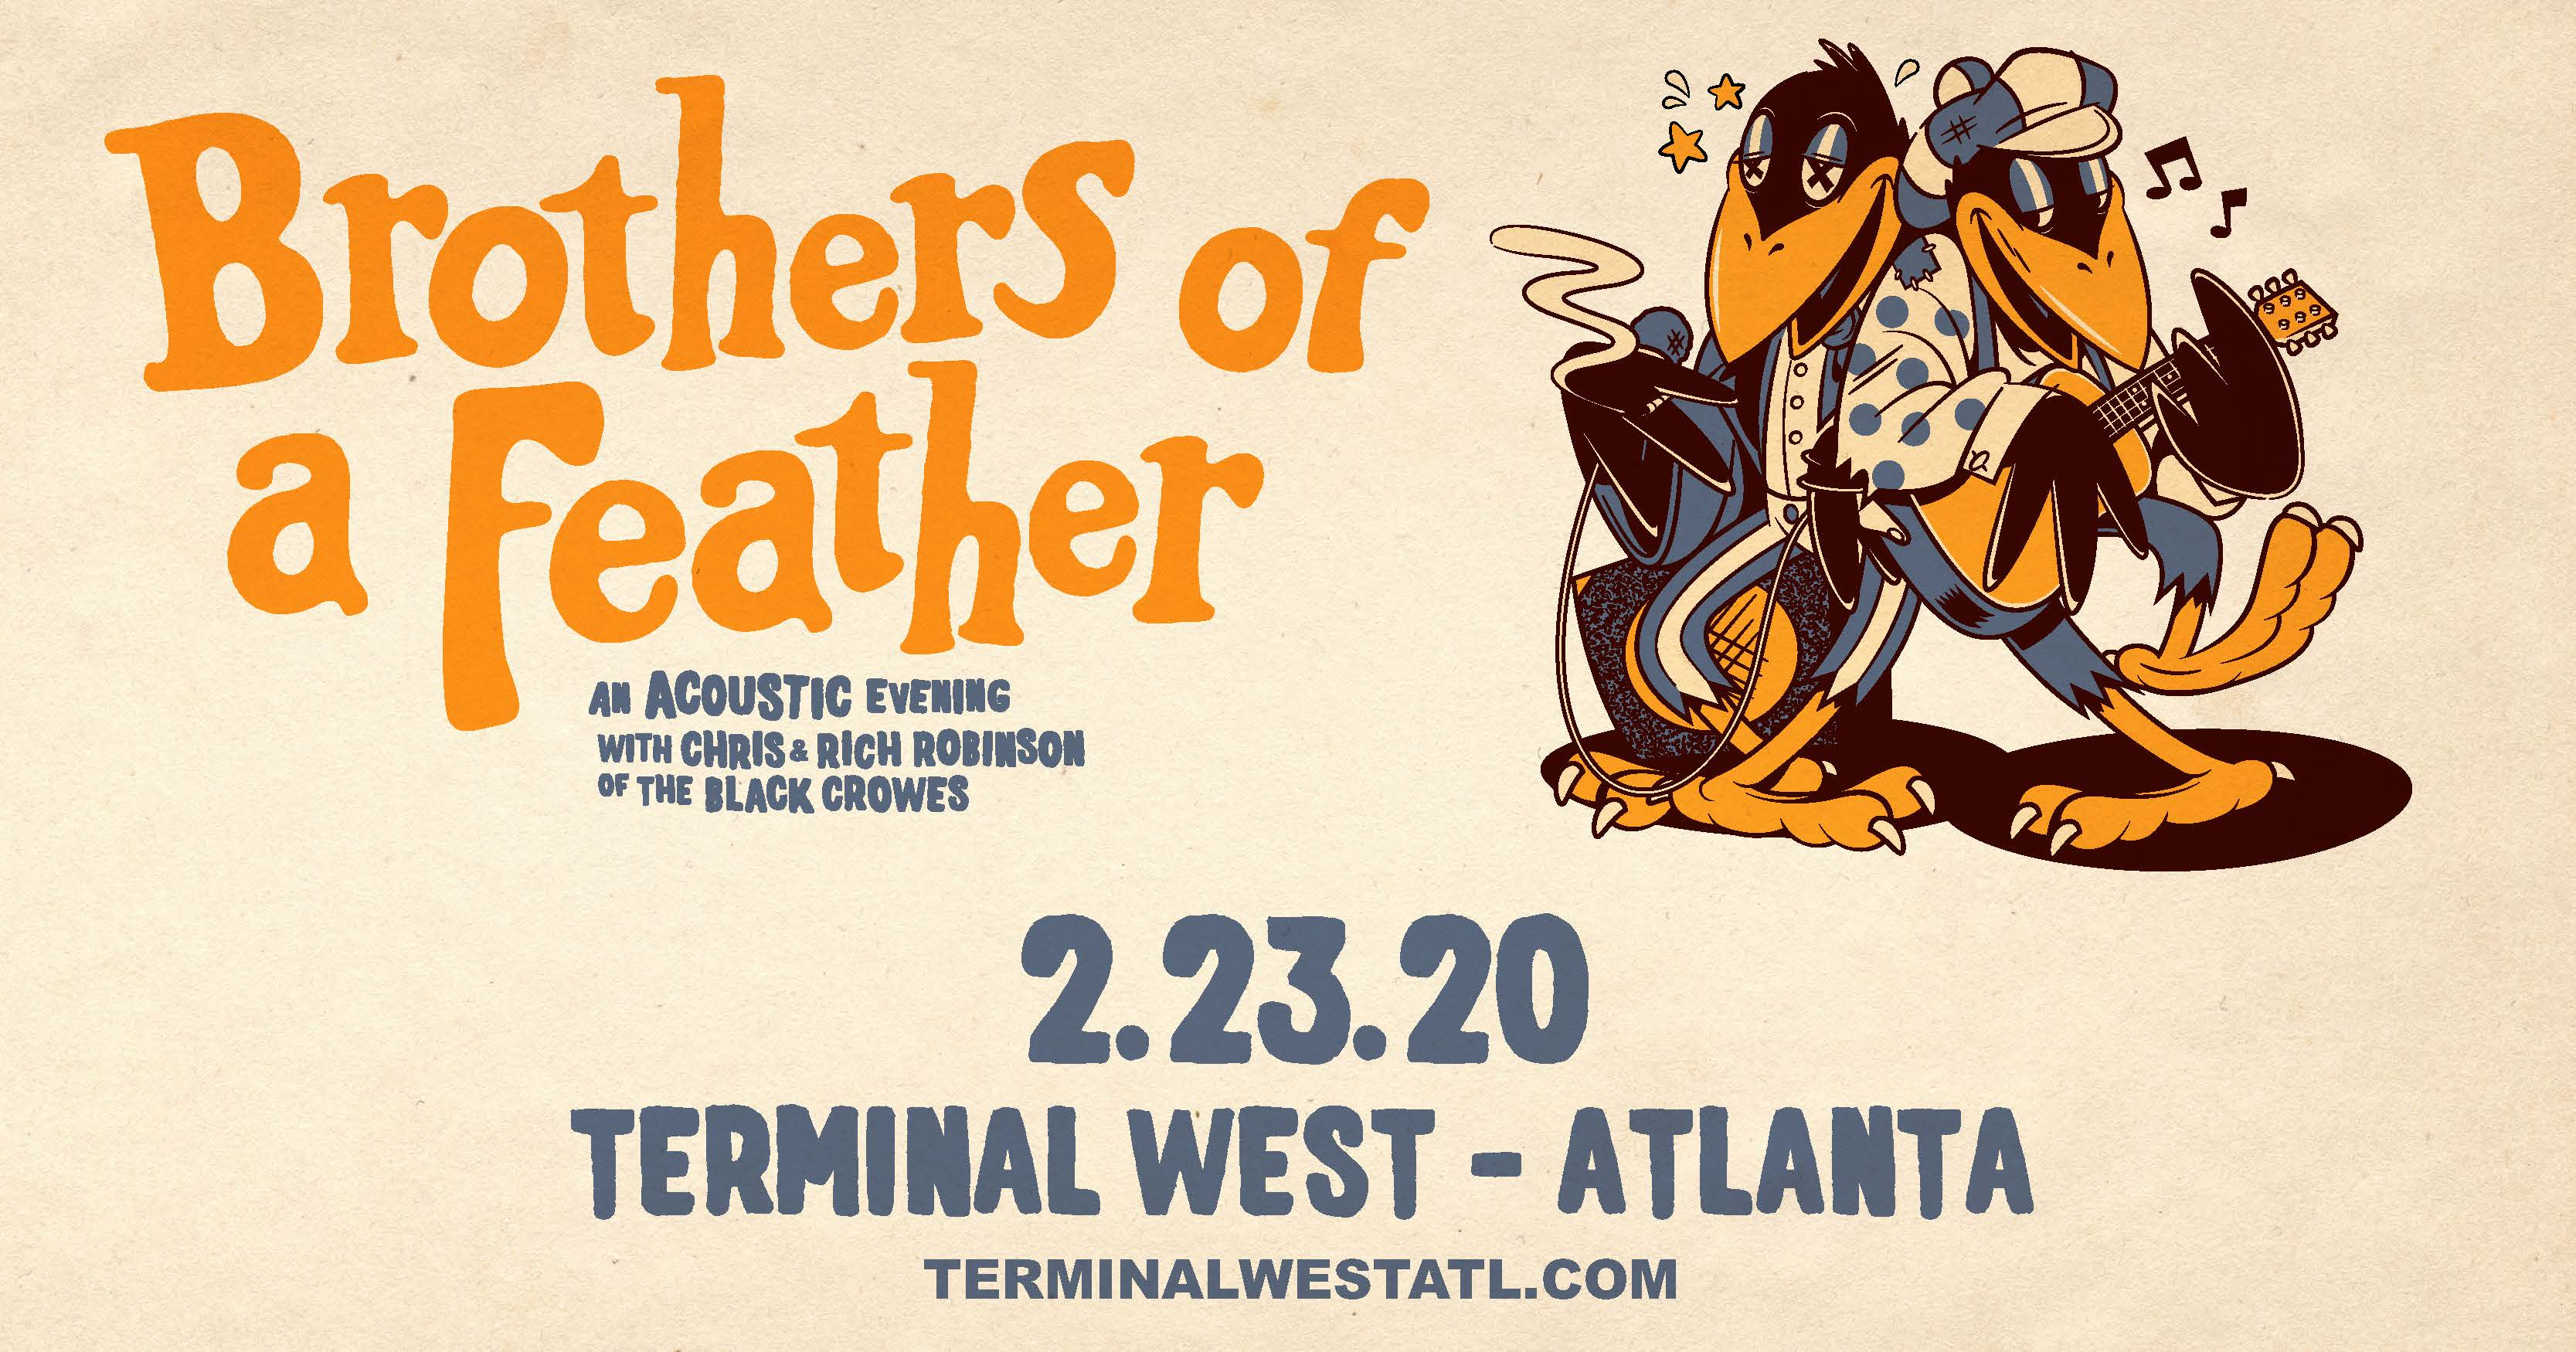 Feb 23 – Brothers of a Feather